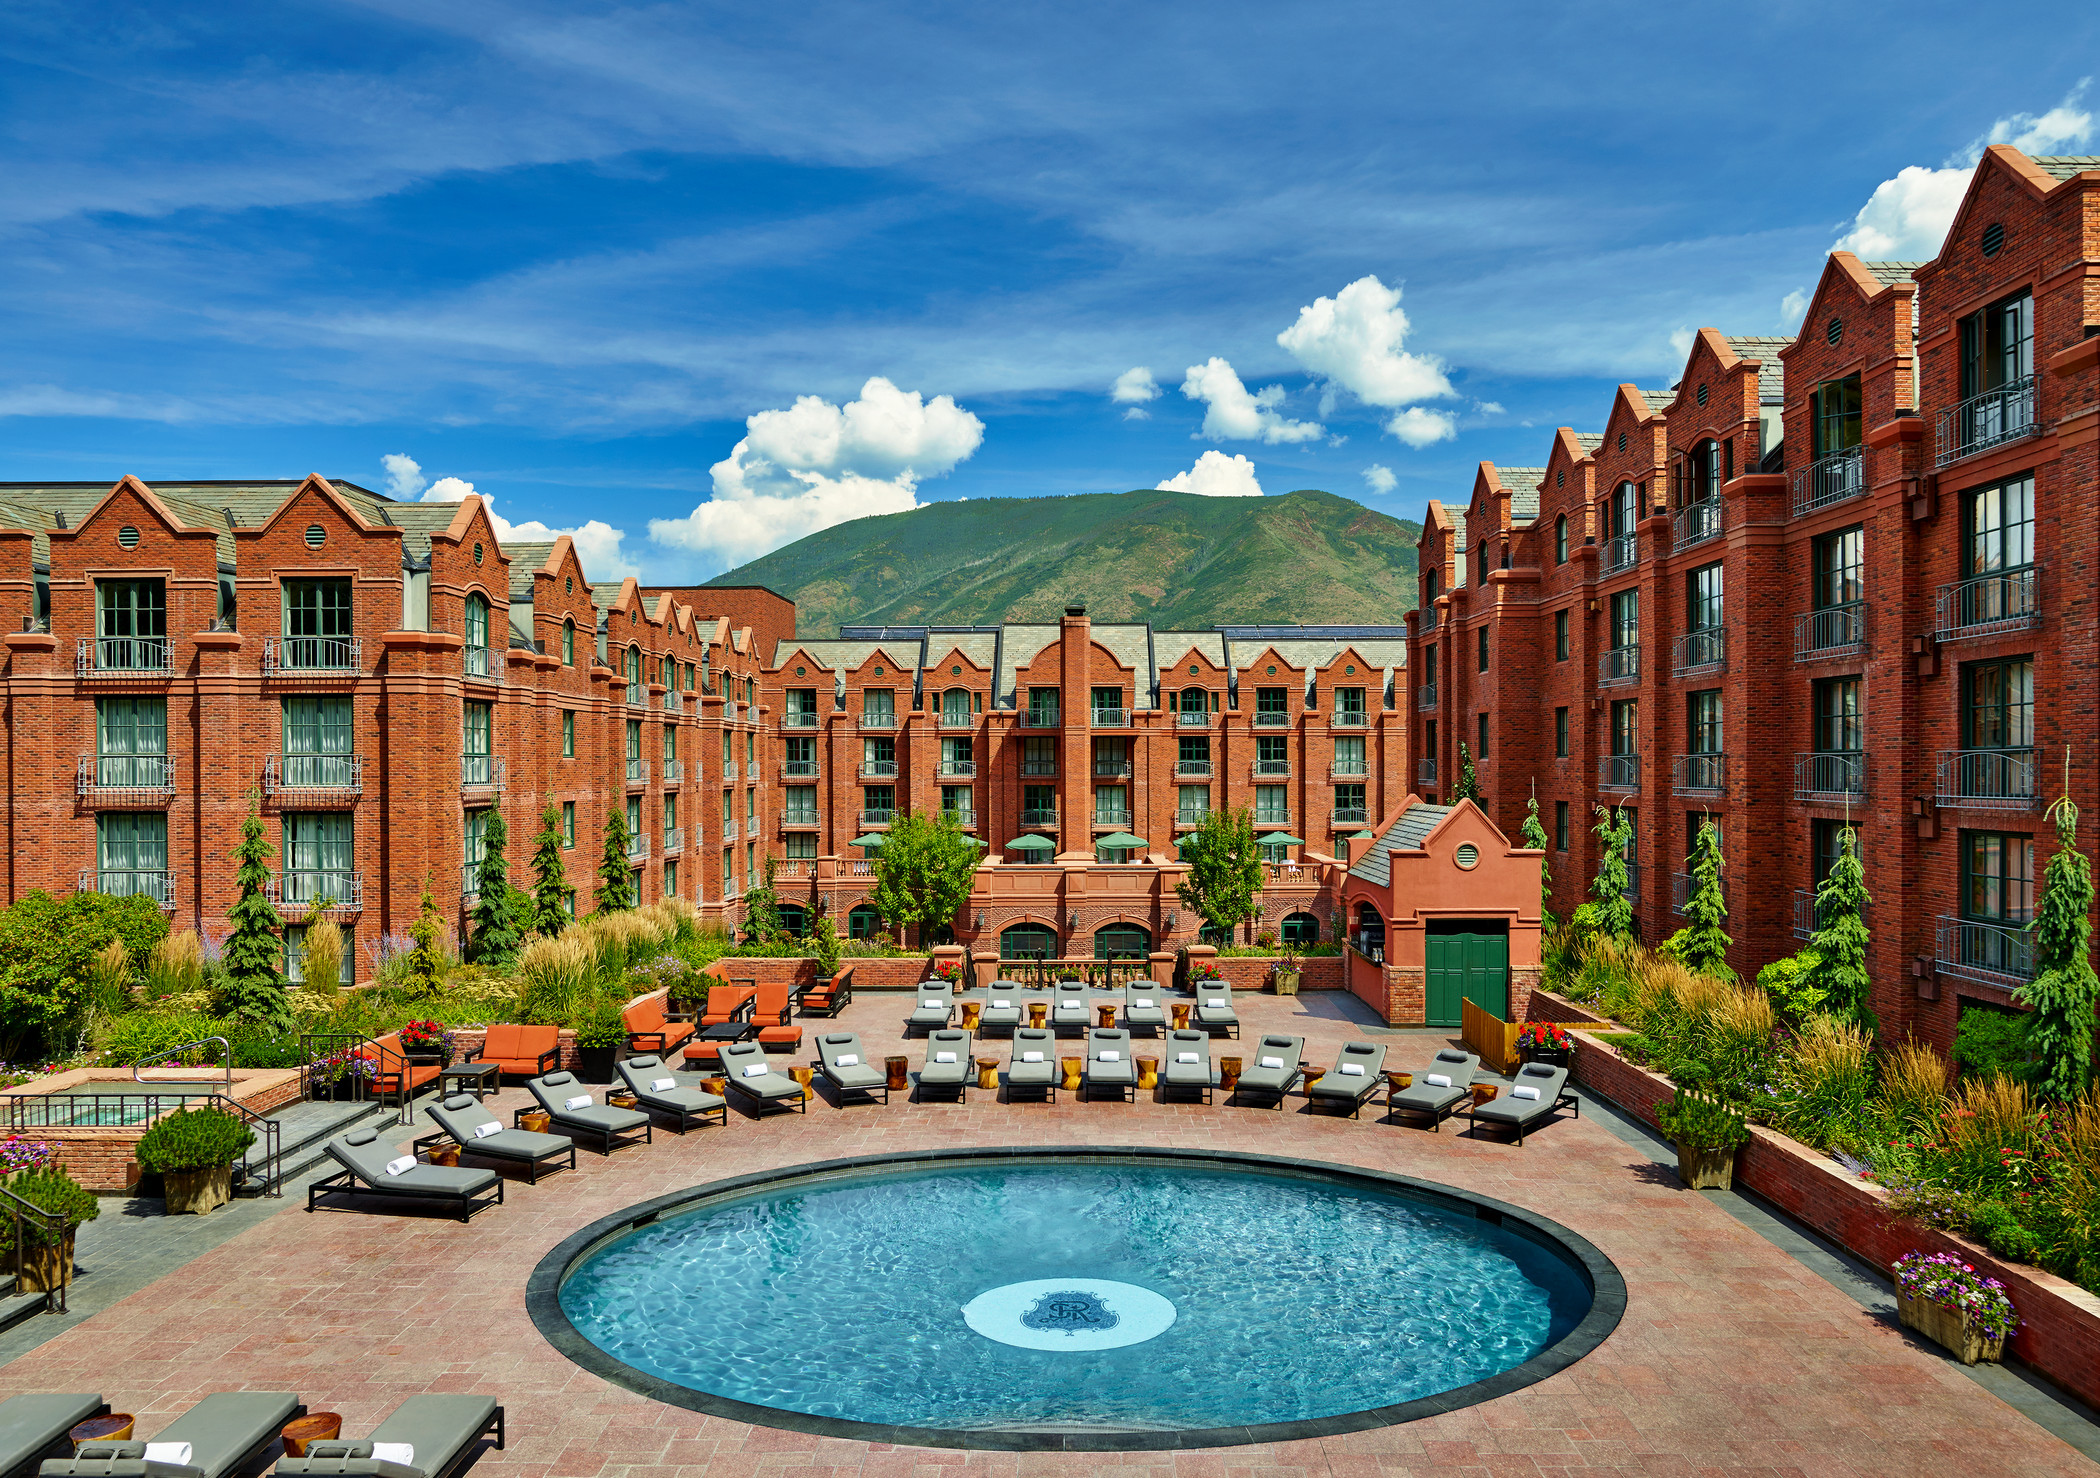 str244po-176829-The-beautiful-St-Regis-Aspen-pool-during-summer